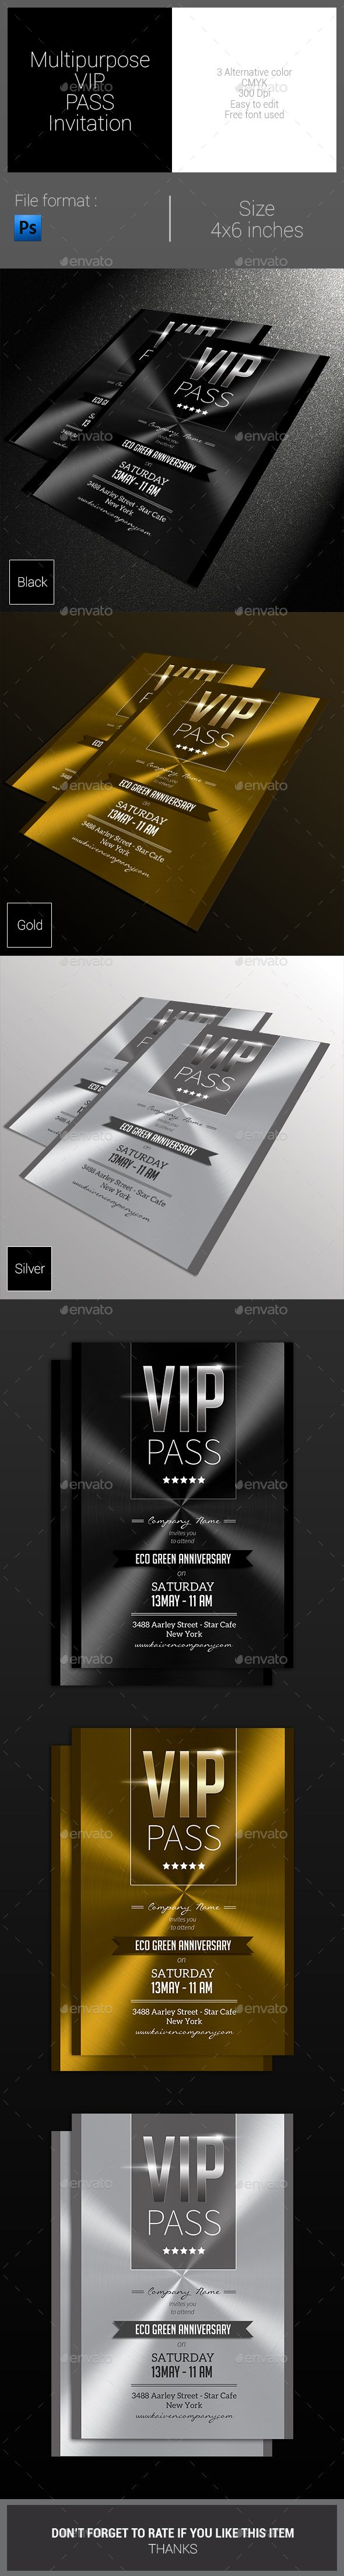 Multipurpose VIP Pass Invitation — Photoshop PSD #metal #flyer • Available here → https://graphicriver.net/item/multipurpose-vip-pass-invitation/8141901?ref=pxcr